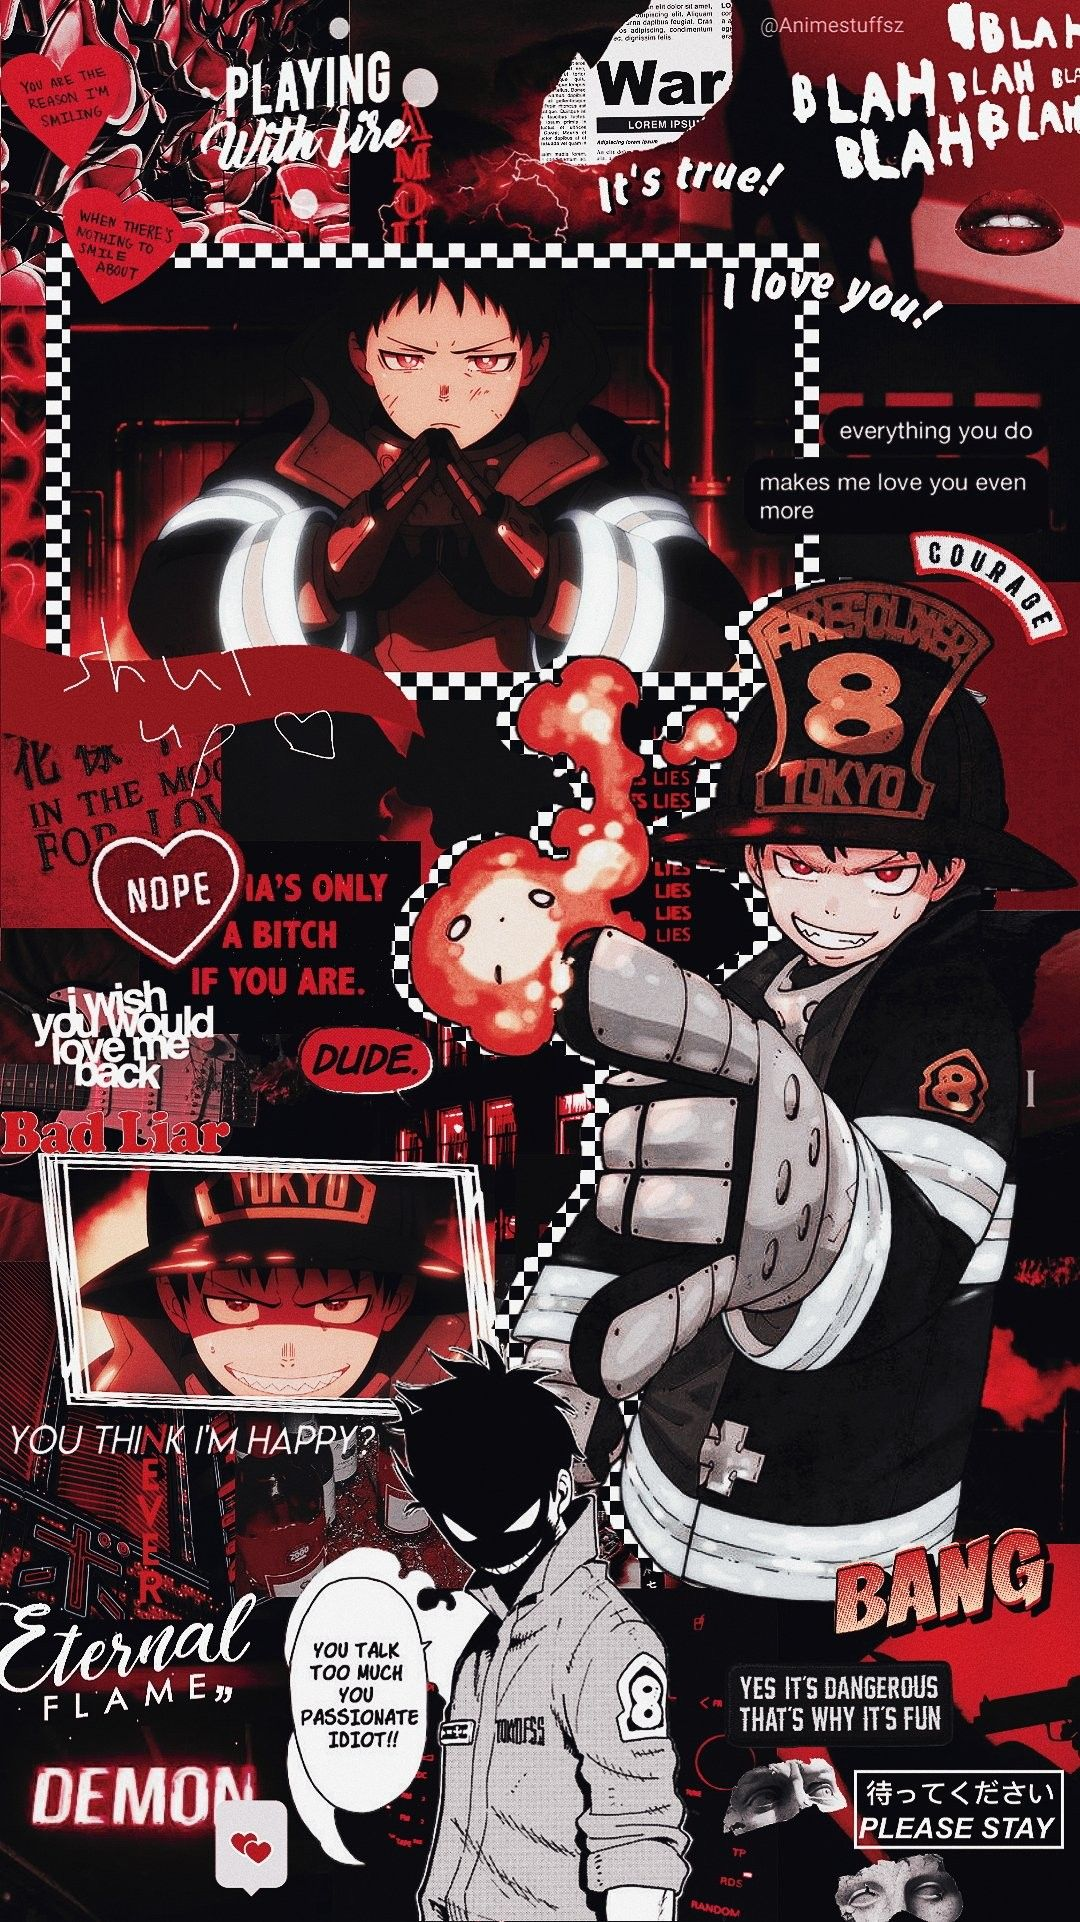 Fire Force Anime Wallpaper Iphone Cute Anime Wallpaper Anime Wallpaper Simple wallpaper;aesthetic wallpaper;wallpaper quotes;flower wallpaper;wallpaper tumblr. anime wallpaper iphone cute anime